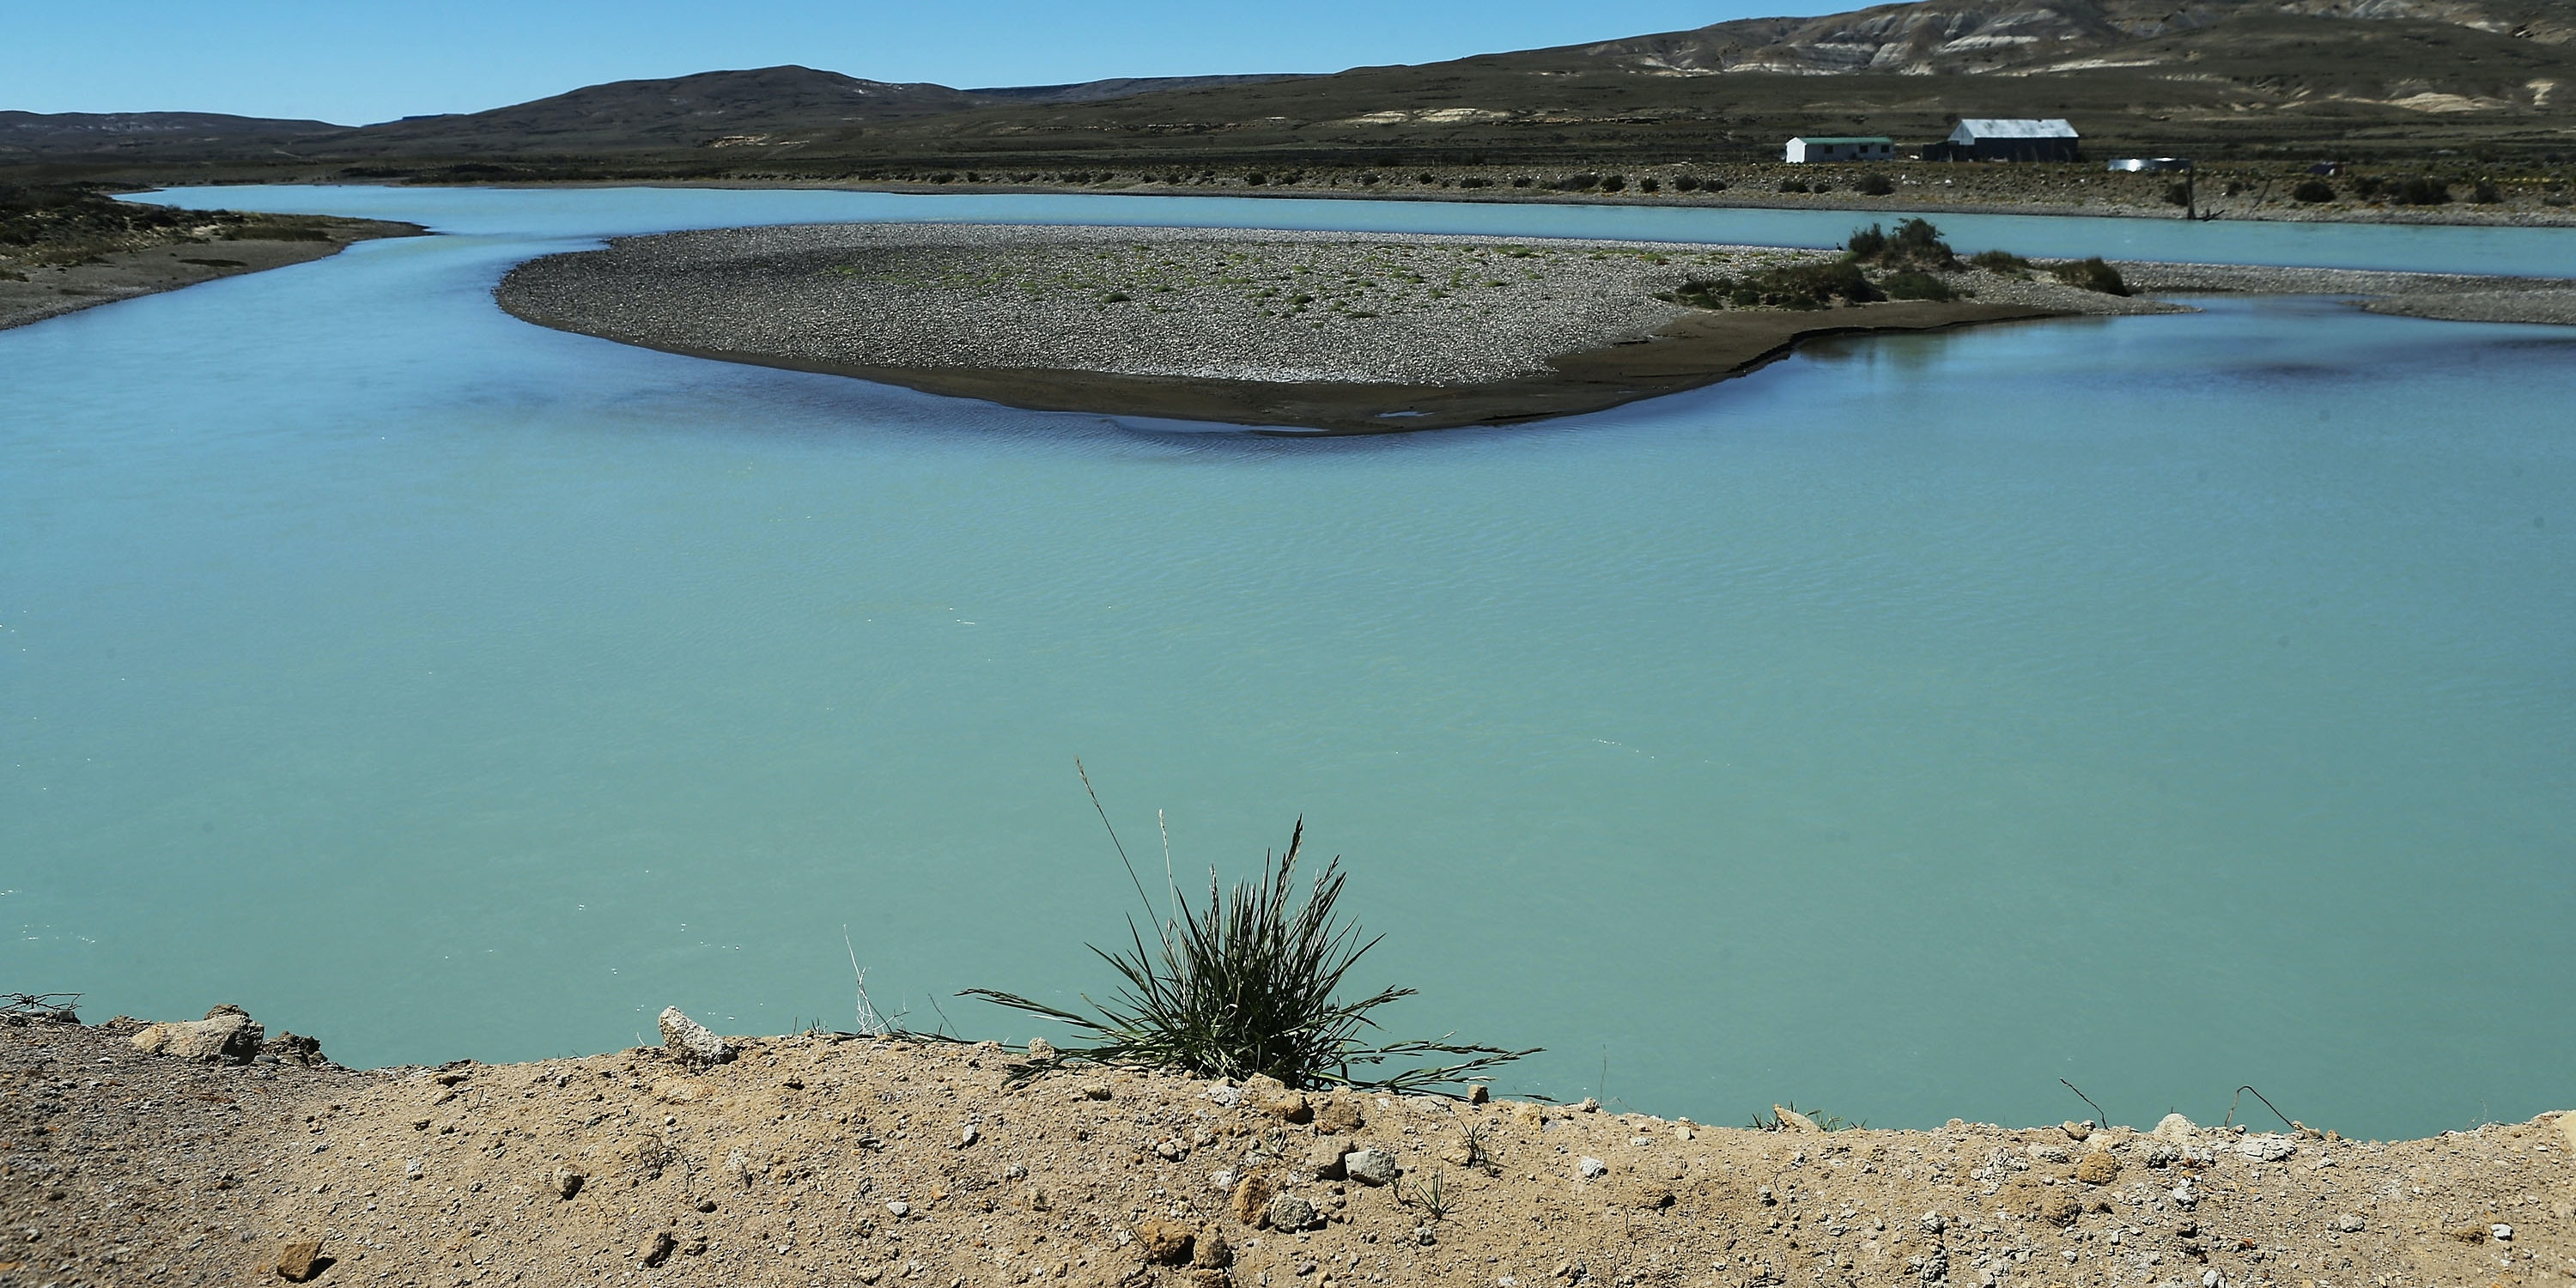 Researchers Found a Whole New Jurassic World of Fossils in Patagonia